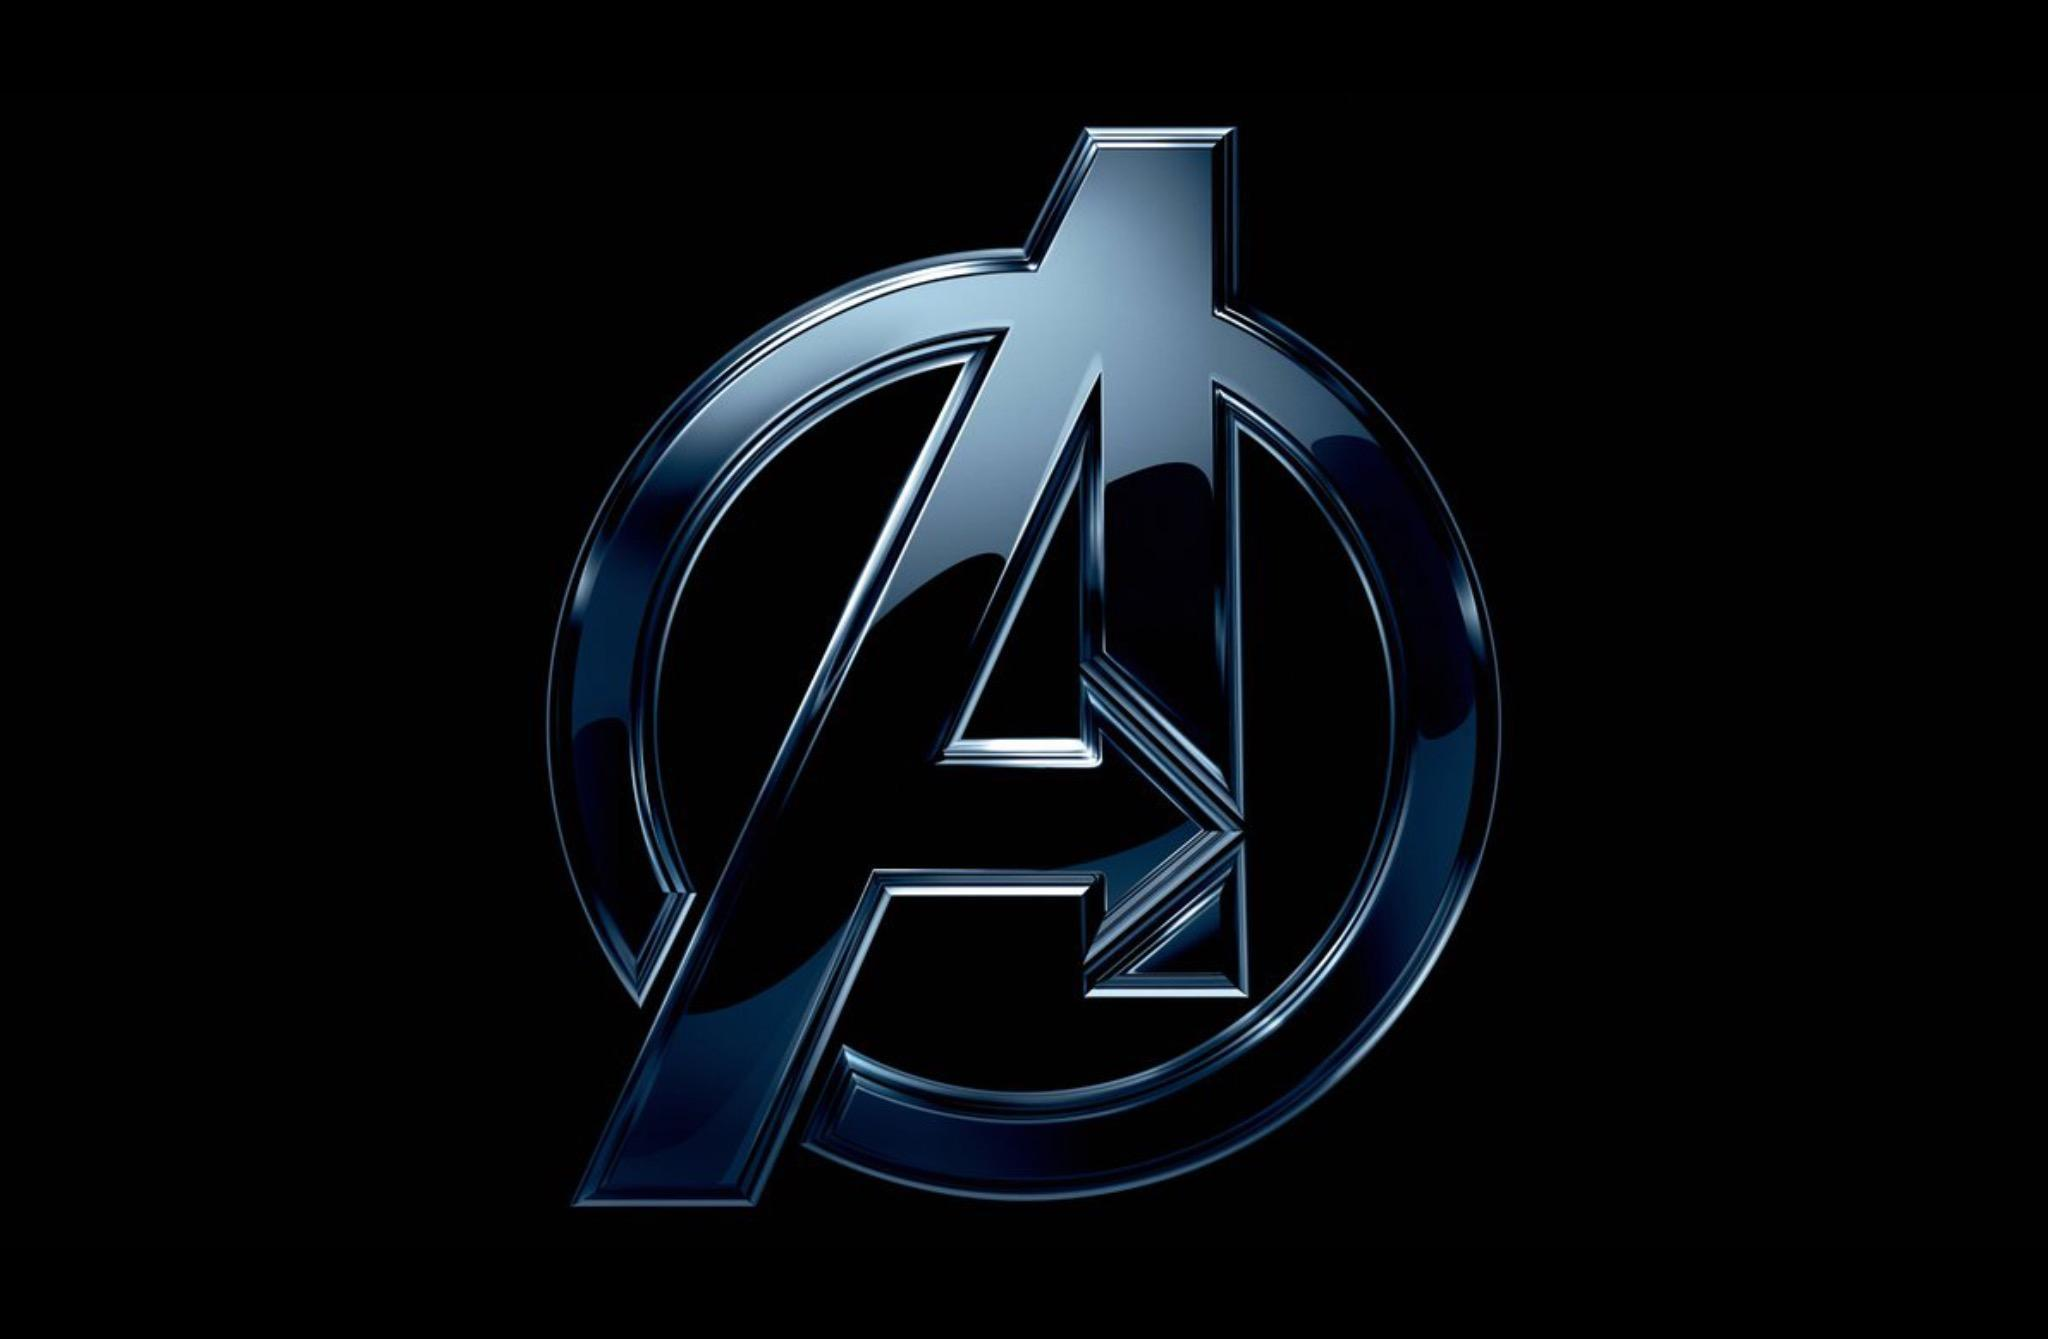 Okay random question but I have to ask... Favorite Marvel movie character?